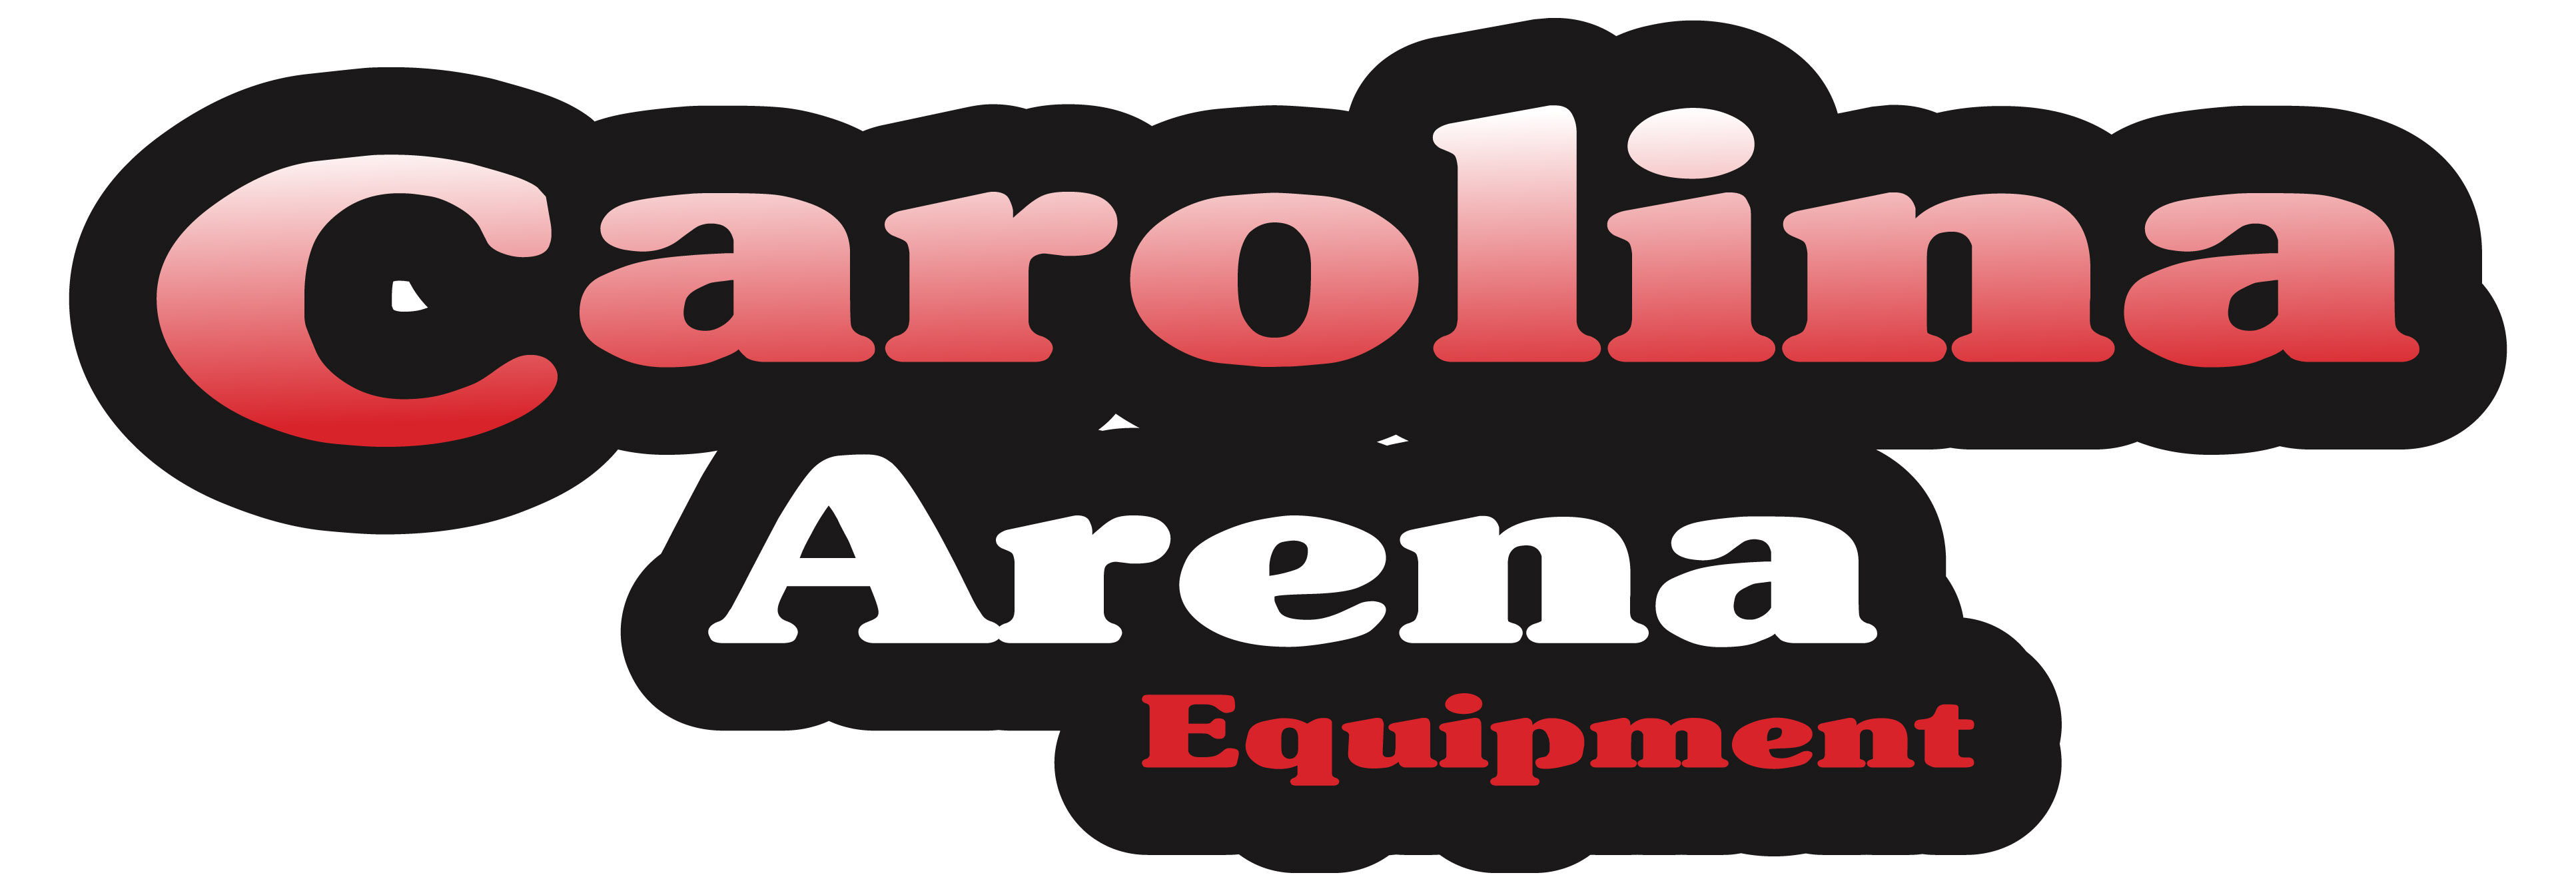 Carolina-Arena-Equipment-logo